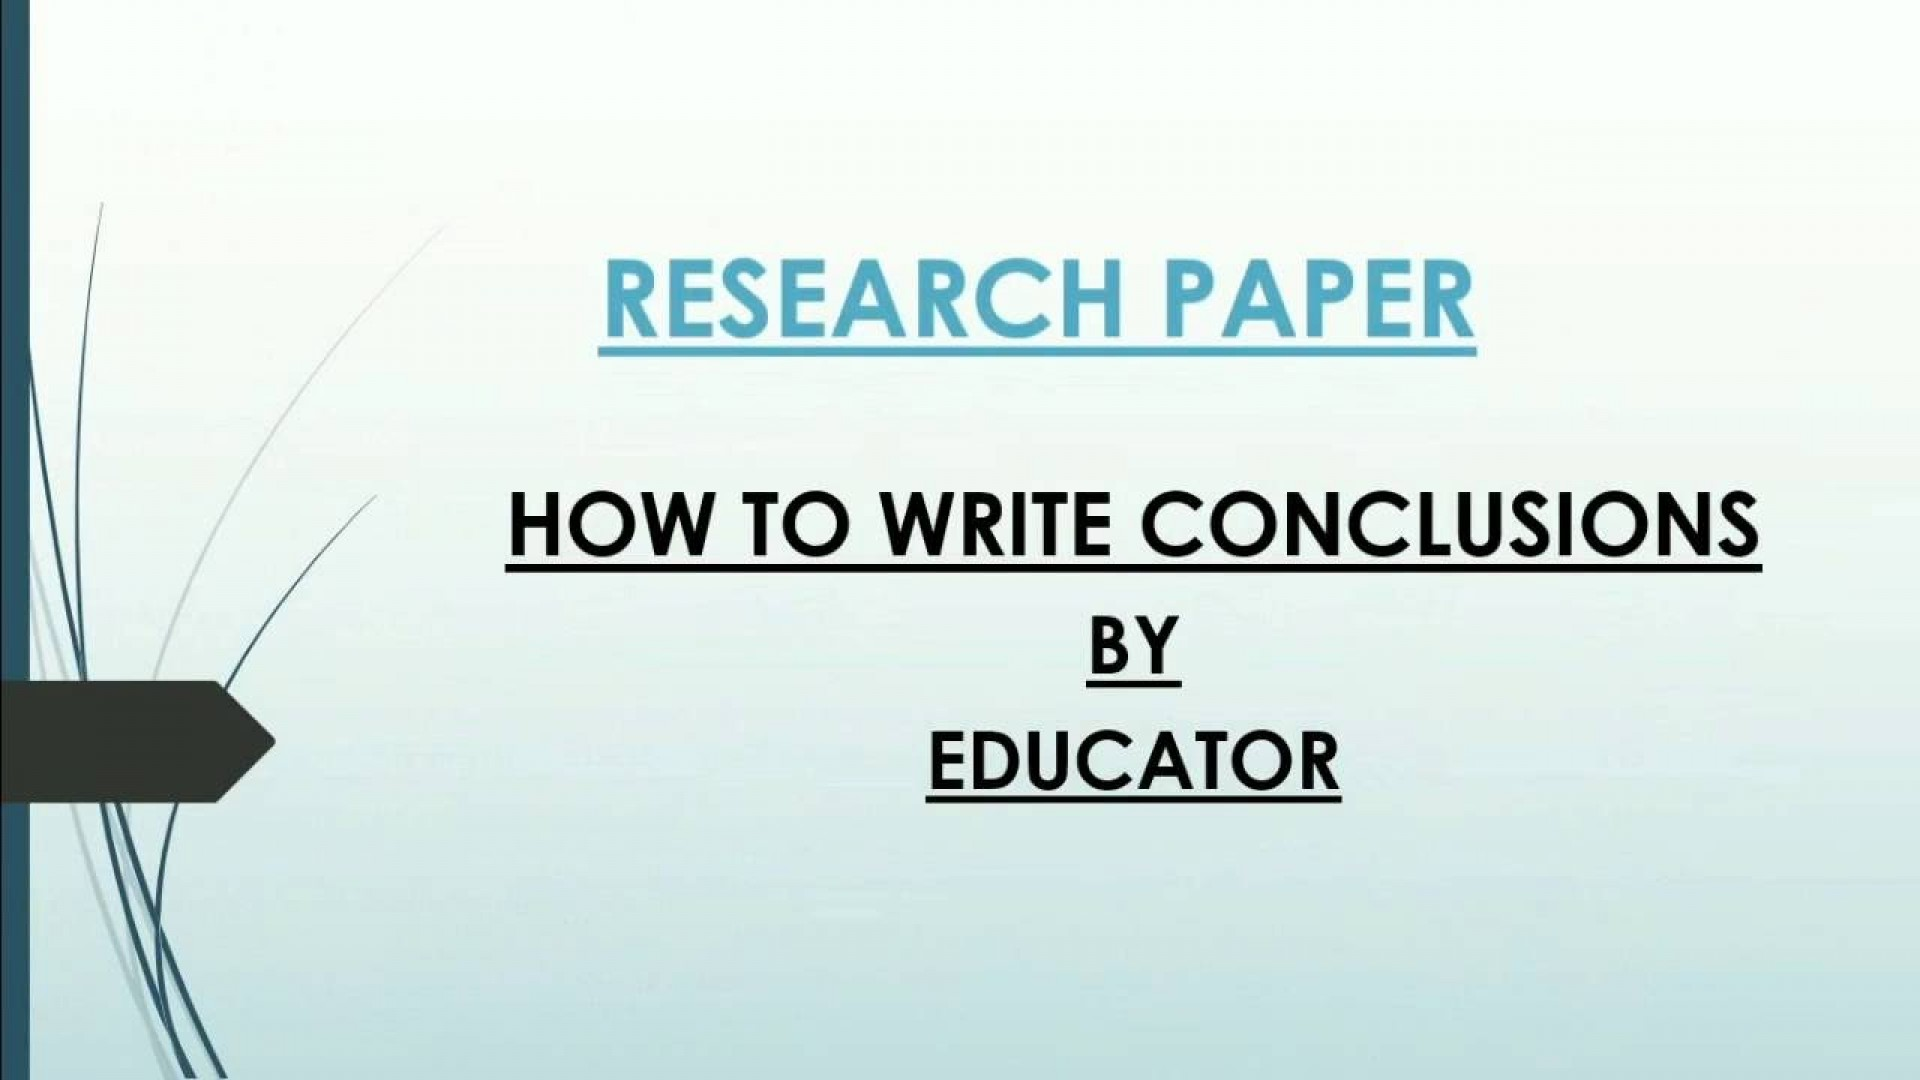 015 How To Write Research Paper Conclusion Imposing A For Pdf Middle School An Argumentative 1920